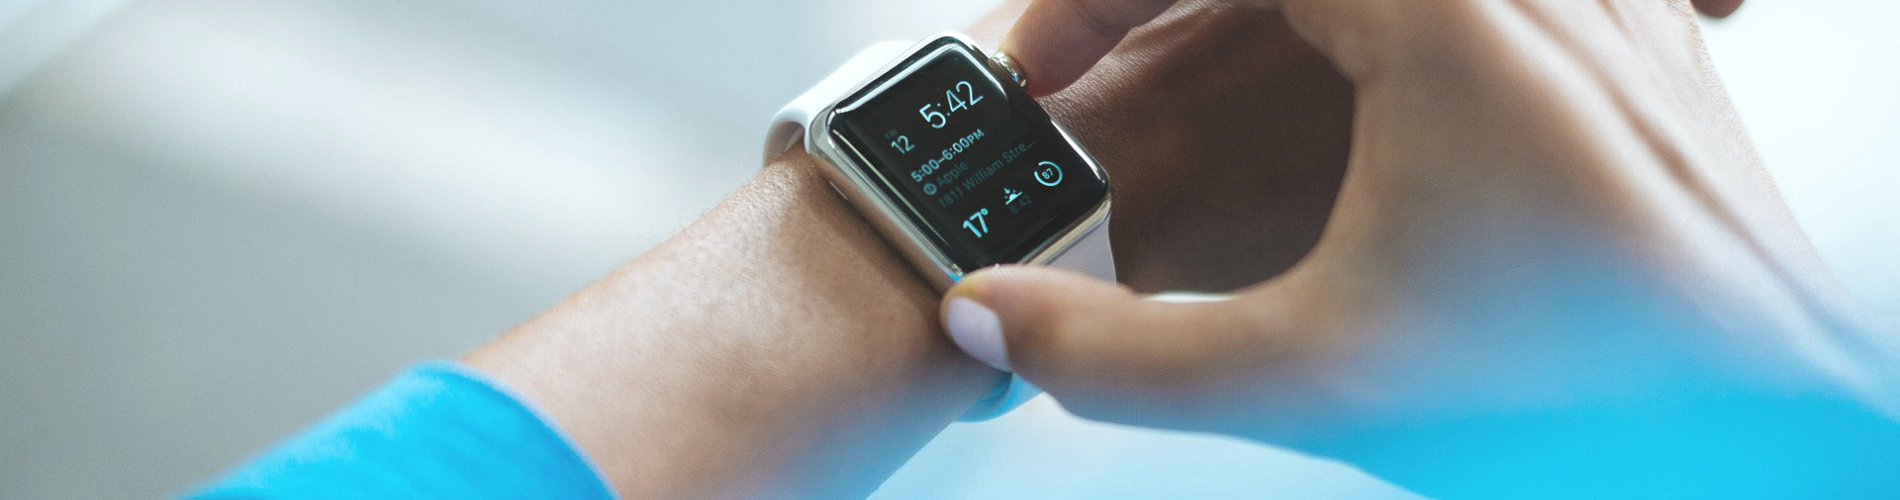 smartwatch internet of things